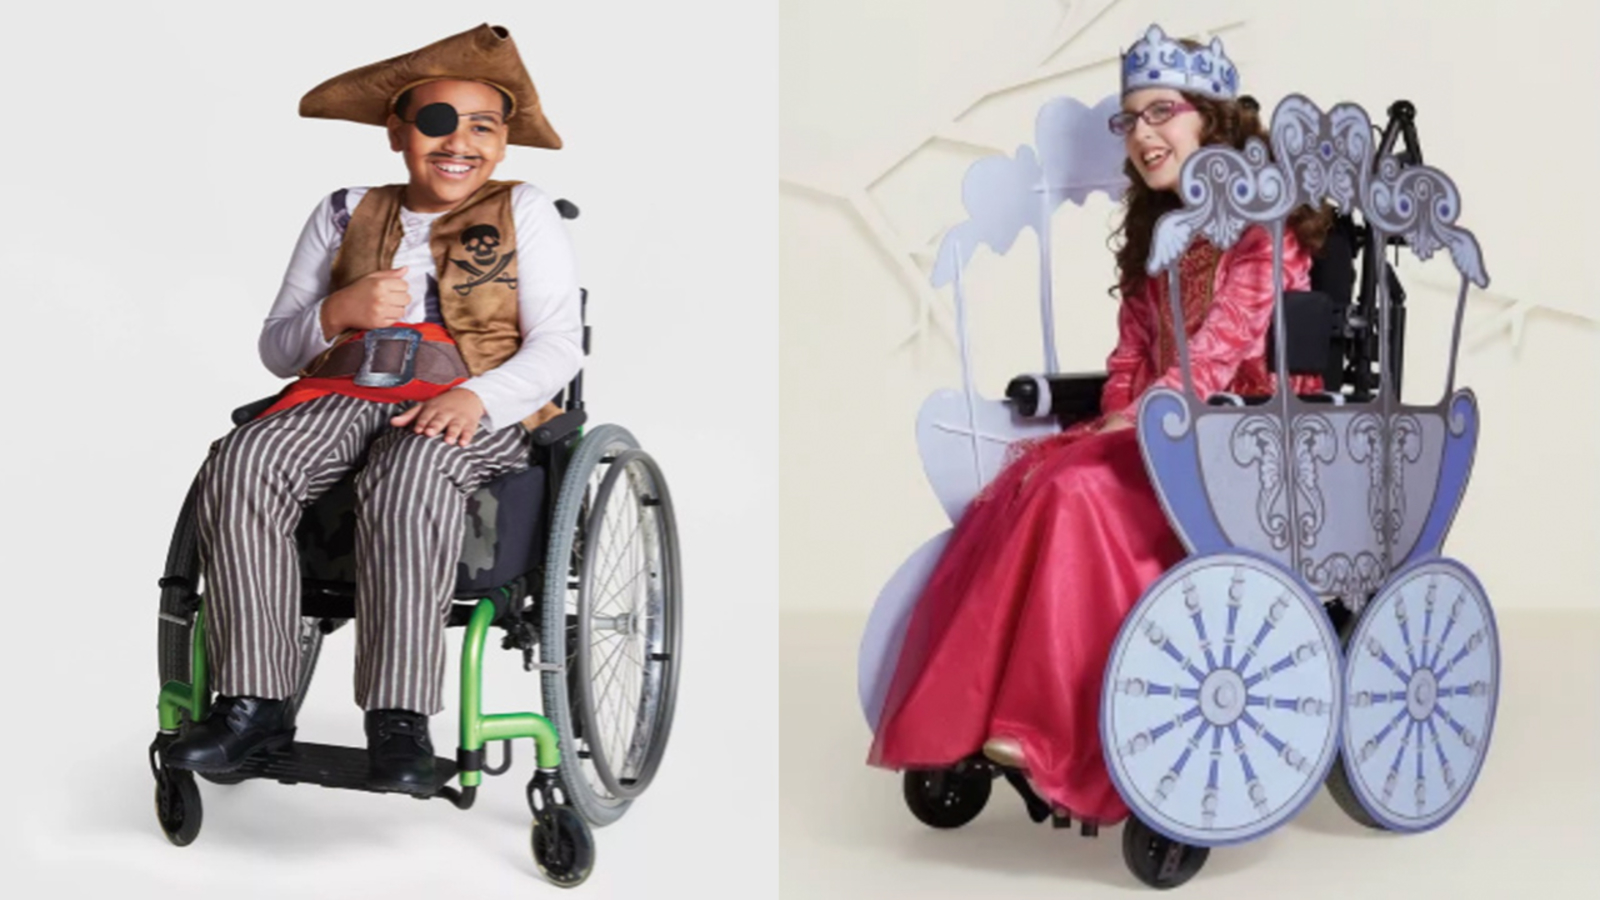 Target selling Halloween costumes for children with disabilities